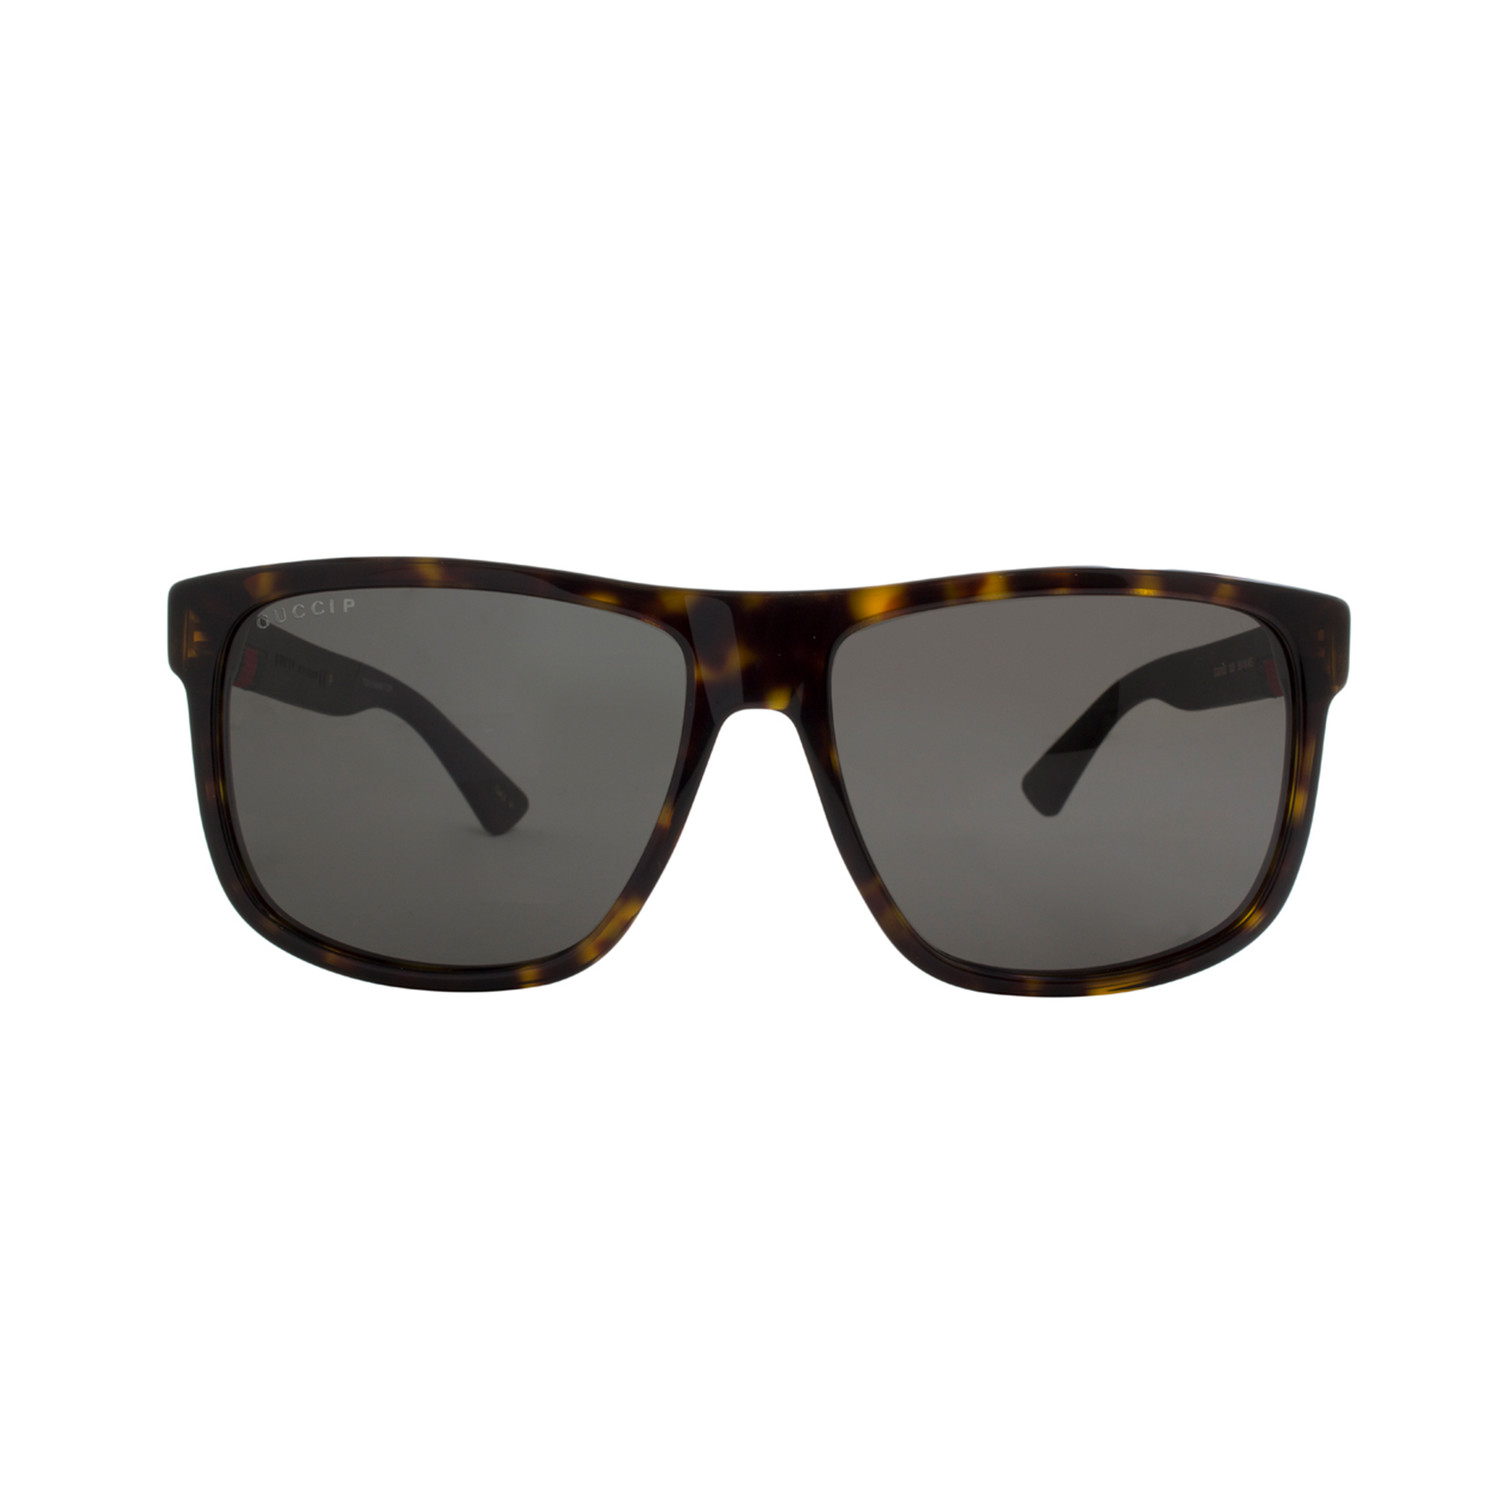 0236b9dcb2a Aec6076d5b4b6d2662a3420cdabf0cac medium · Gucci    Men s GG0010S-003 58  Sunglasses    Polarized